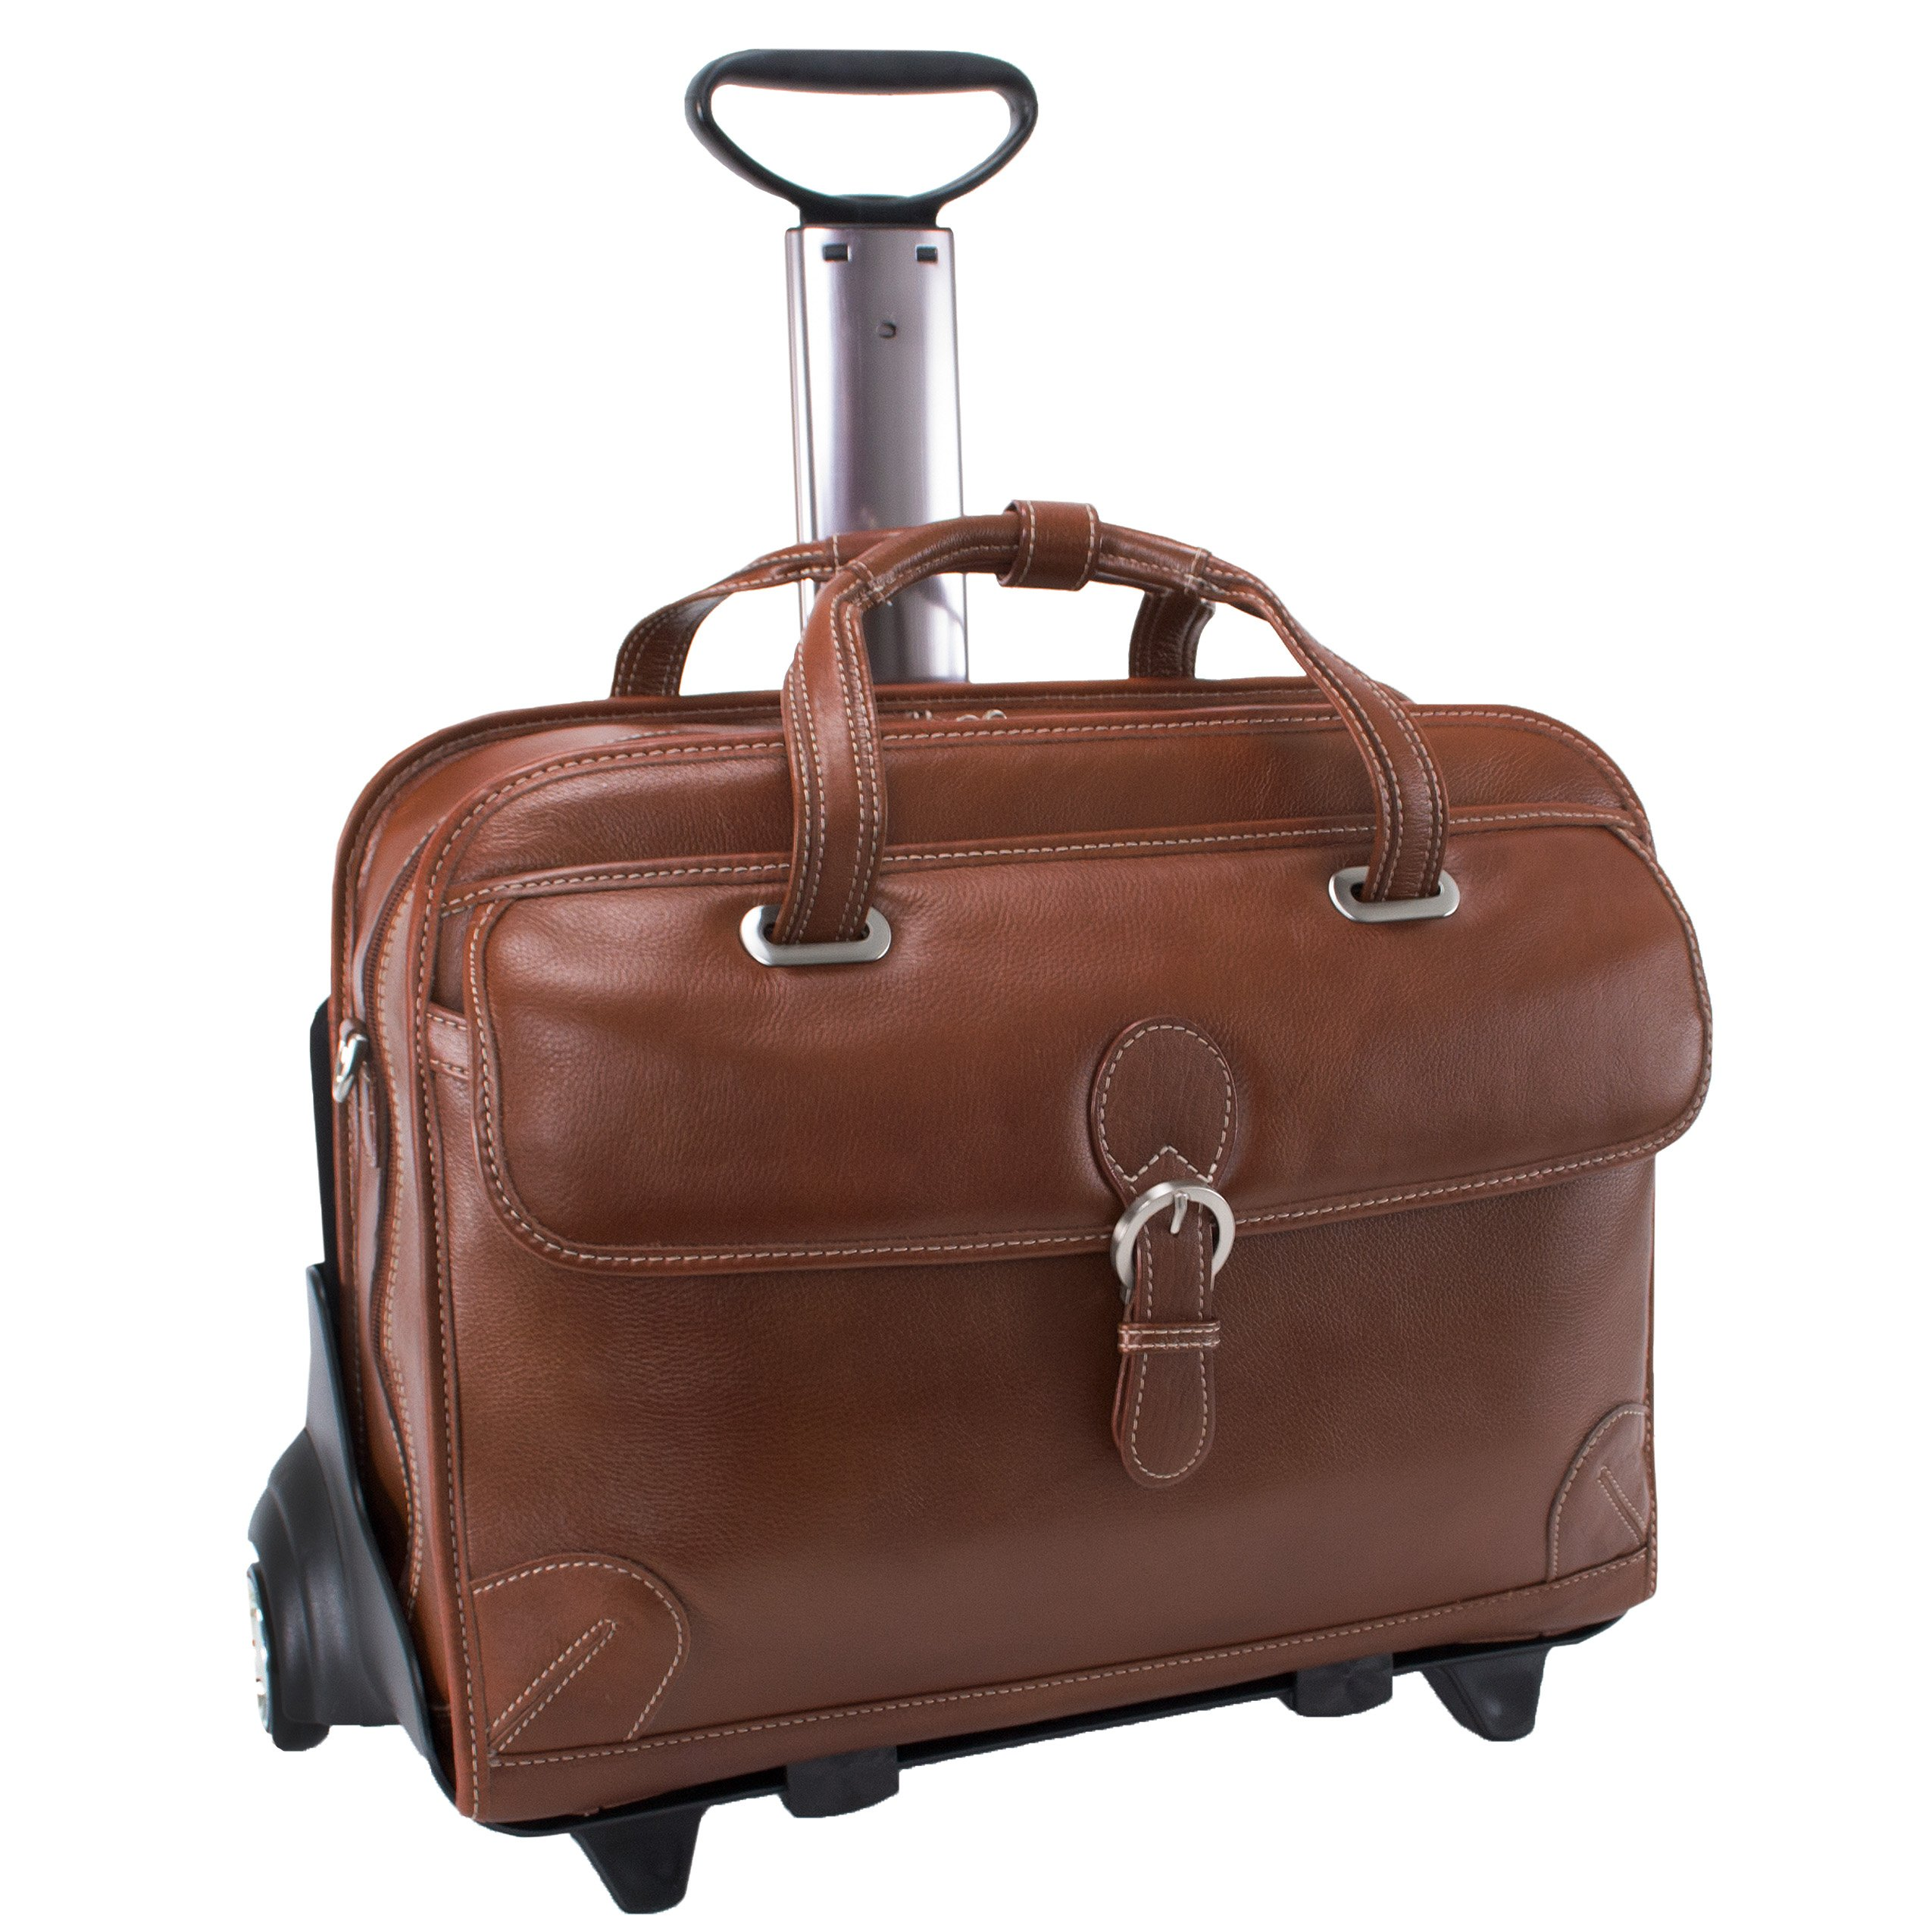 Siamod CARUGETTO 45294 Cognac Leather Detachable-Wheeled Laptop Case by Siamod